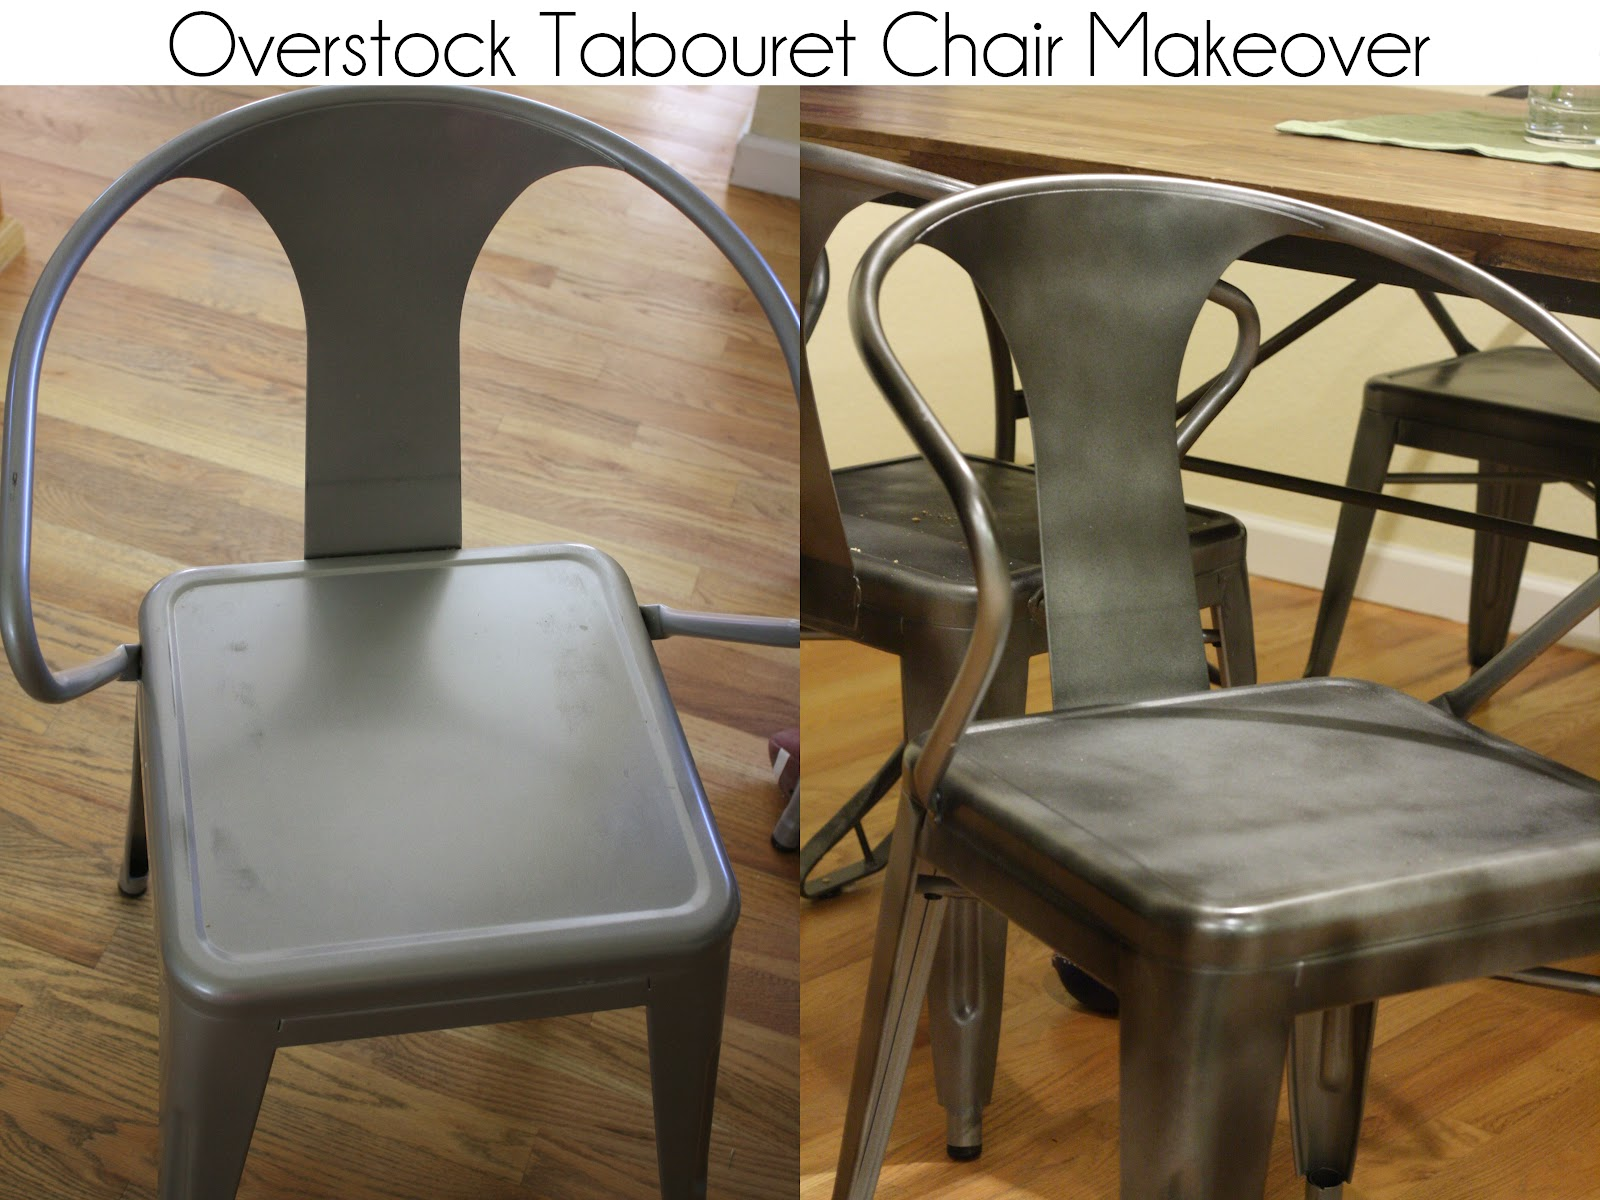 Overstock Chairs Kitchen Chair Makeover Overstock Tabouret Chairs Painted